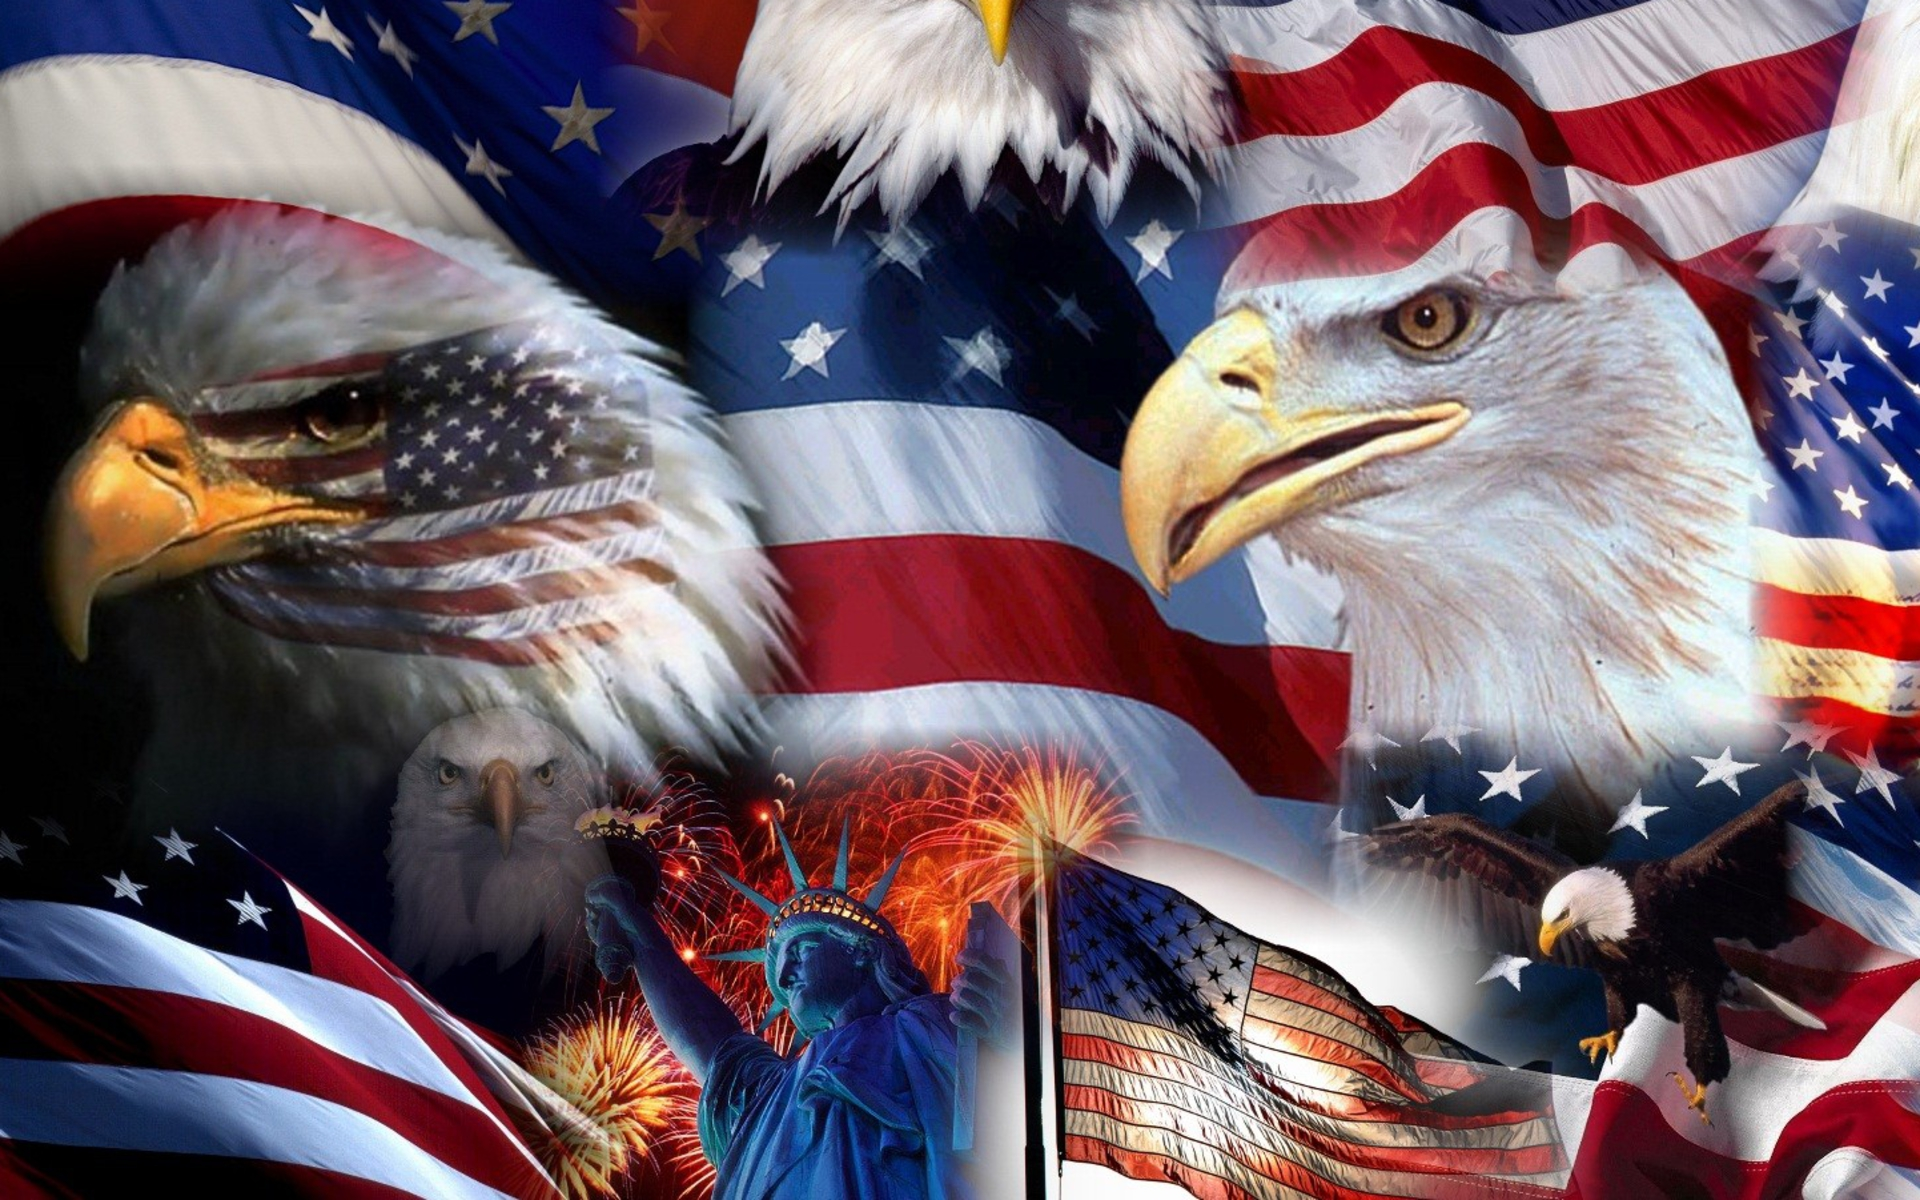 American Flag Archives   Page 3 of 5   Common Sense Evaluation 1920x1200